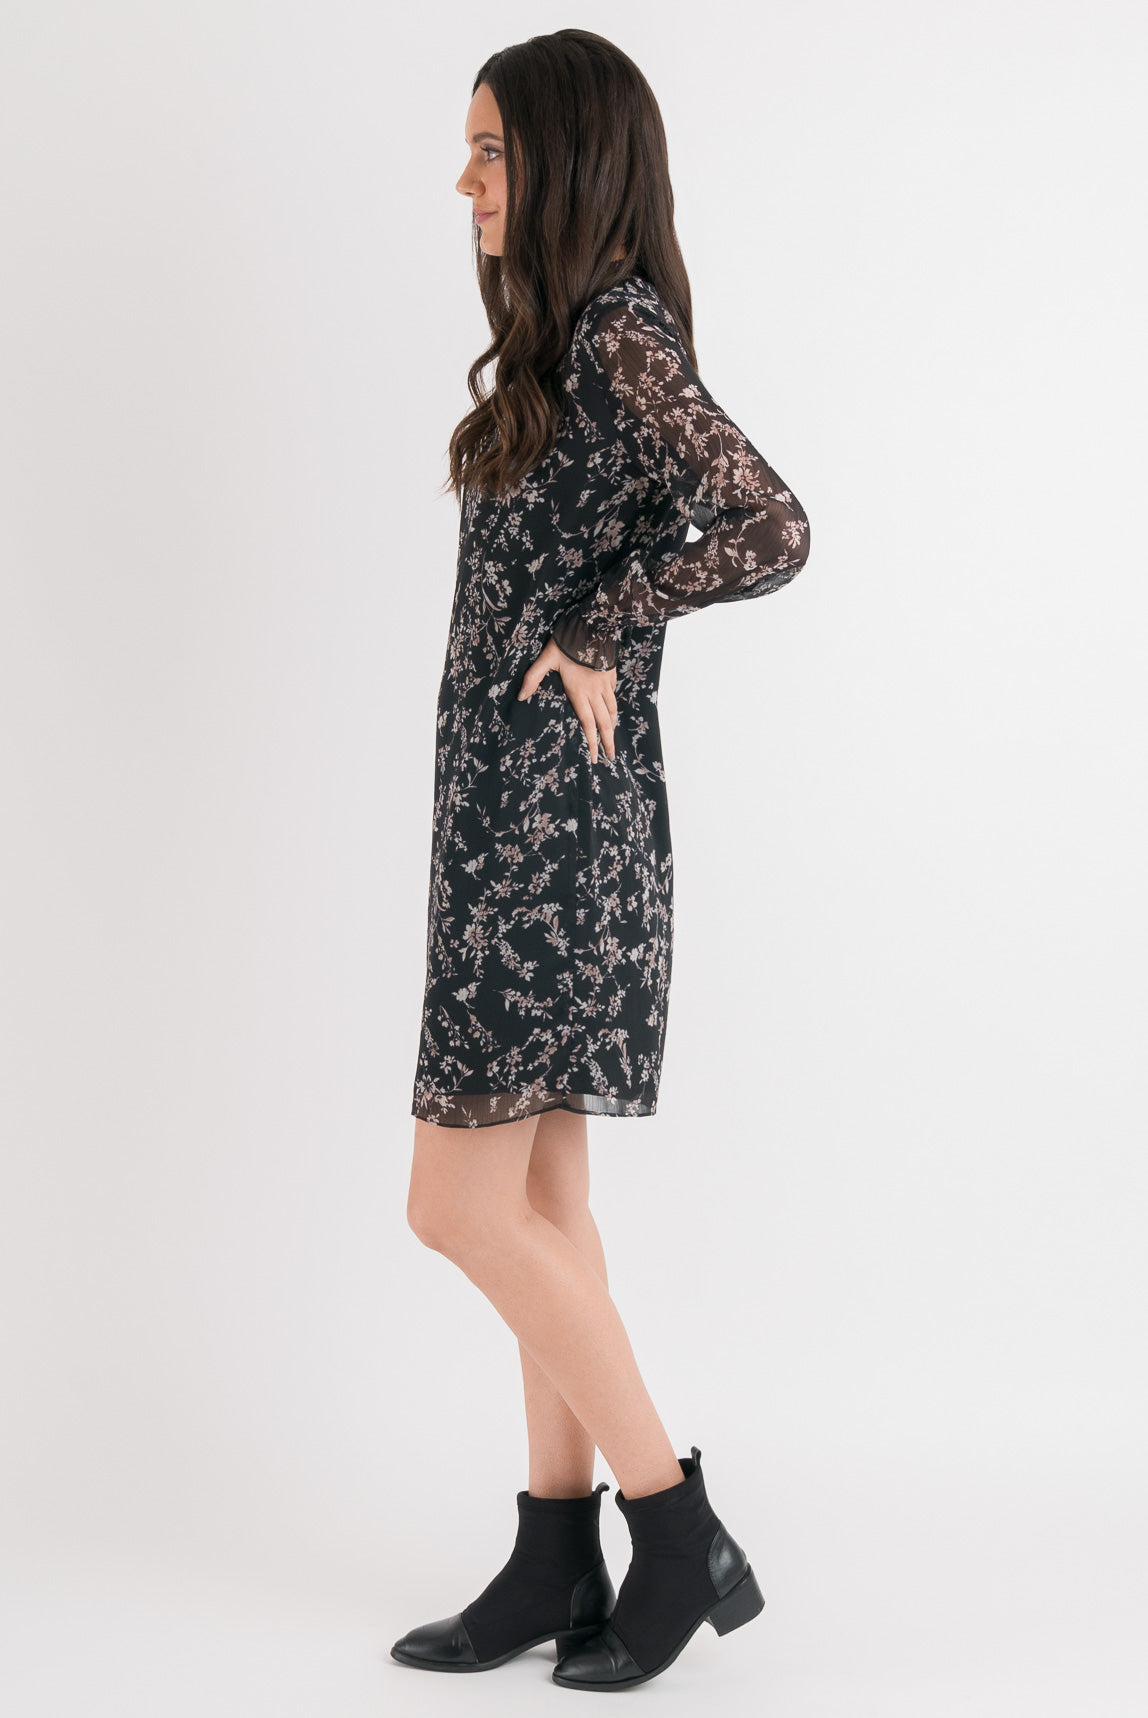 Emma Dress - Black Floral